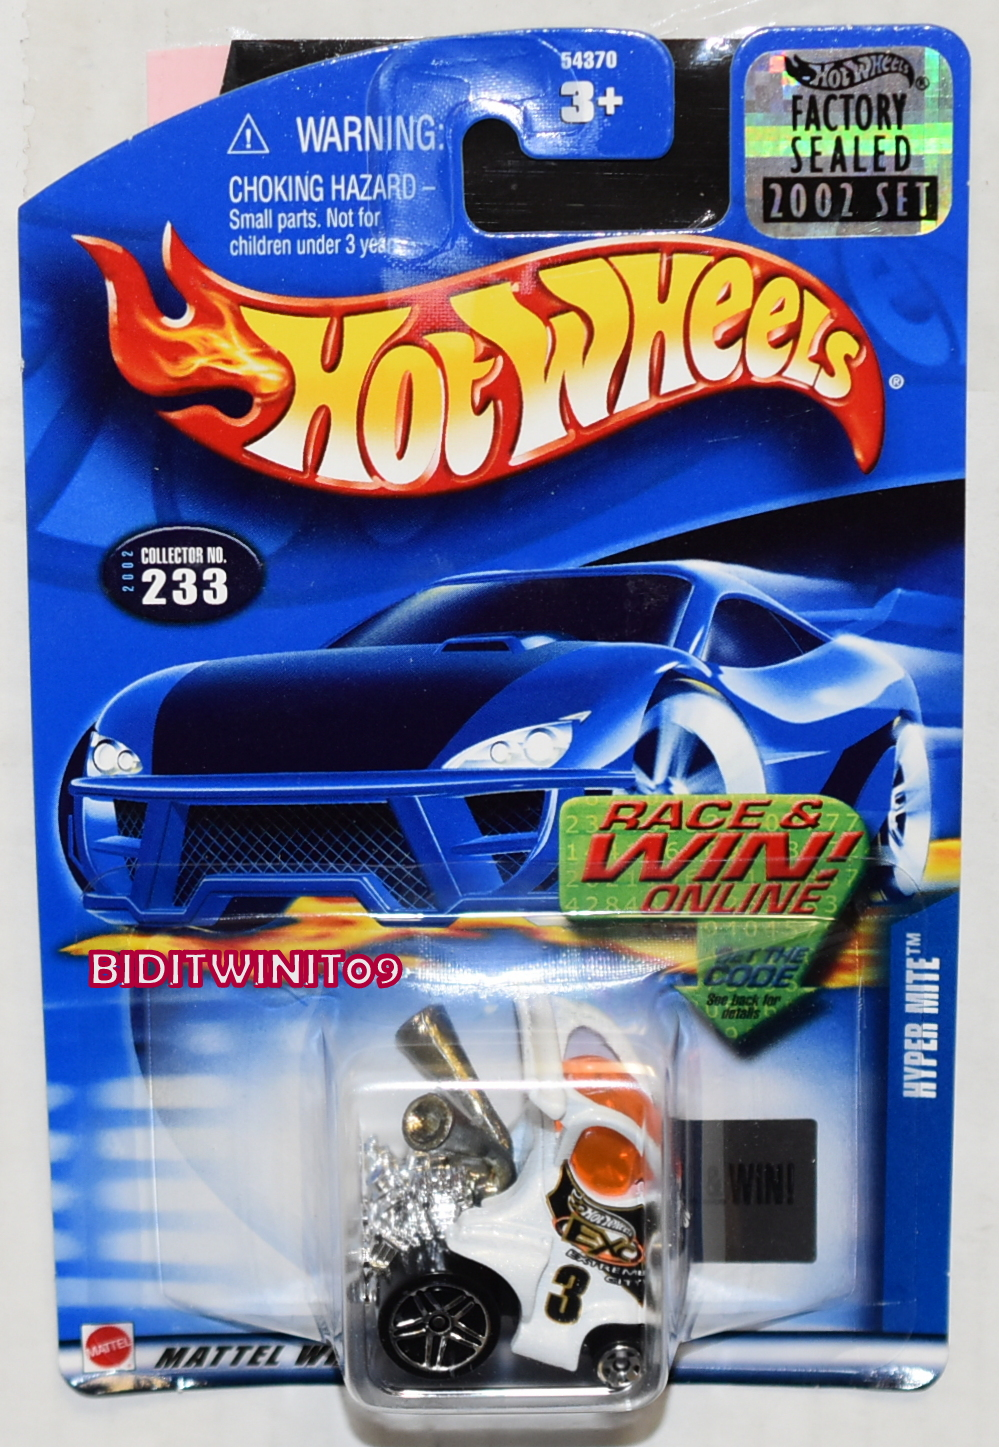 HOT WHEELS 2002 HYPER MITE #233 FACTORY SEALED